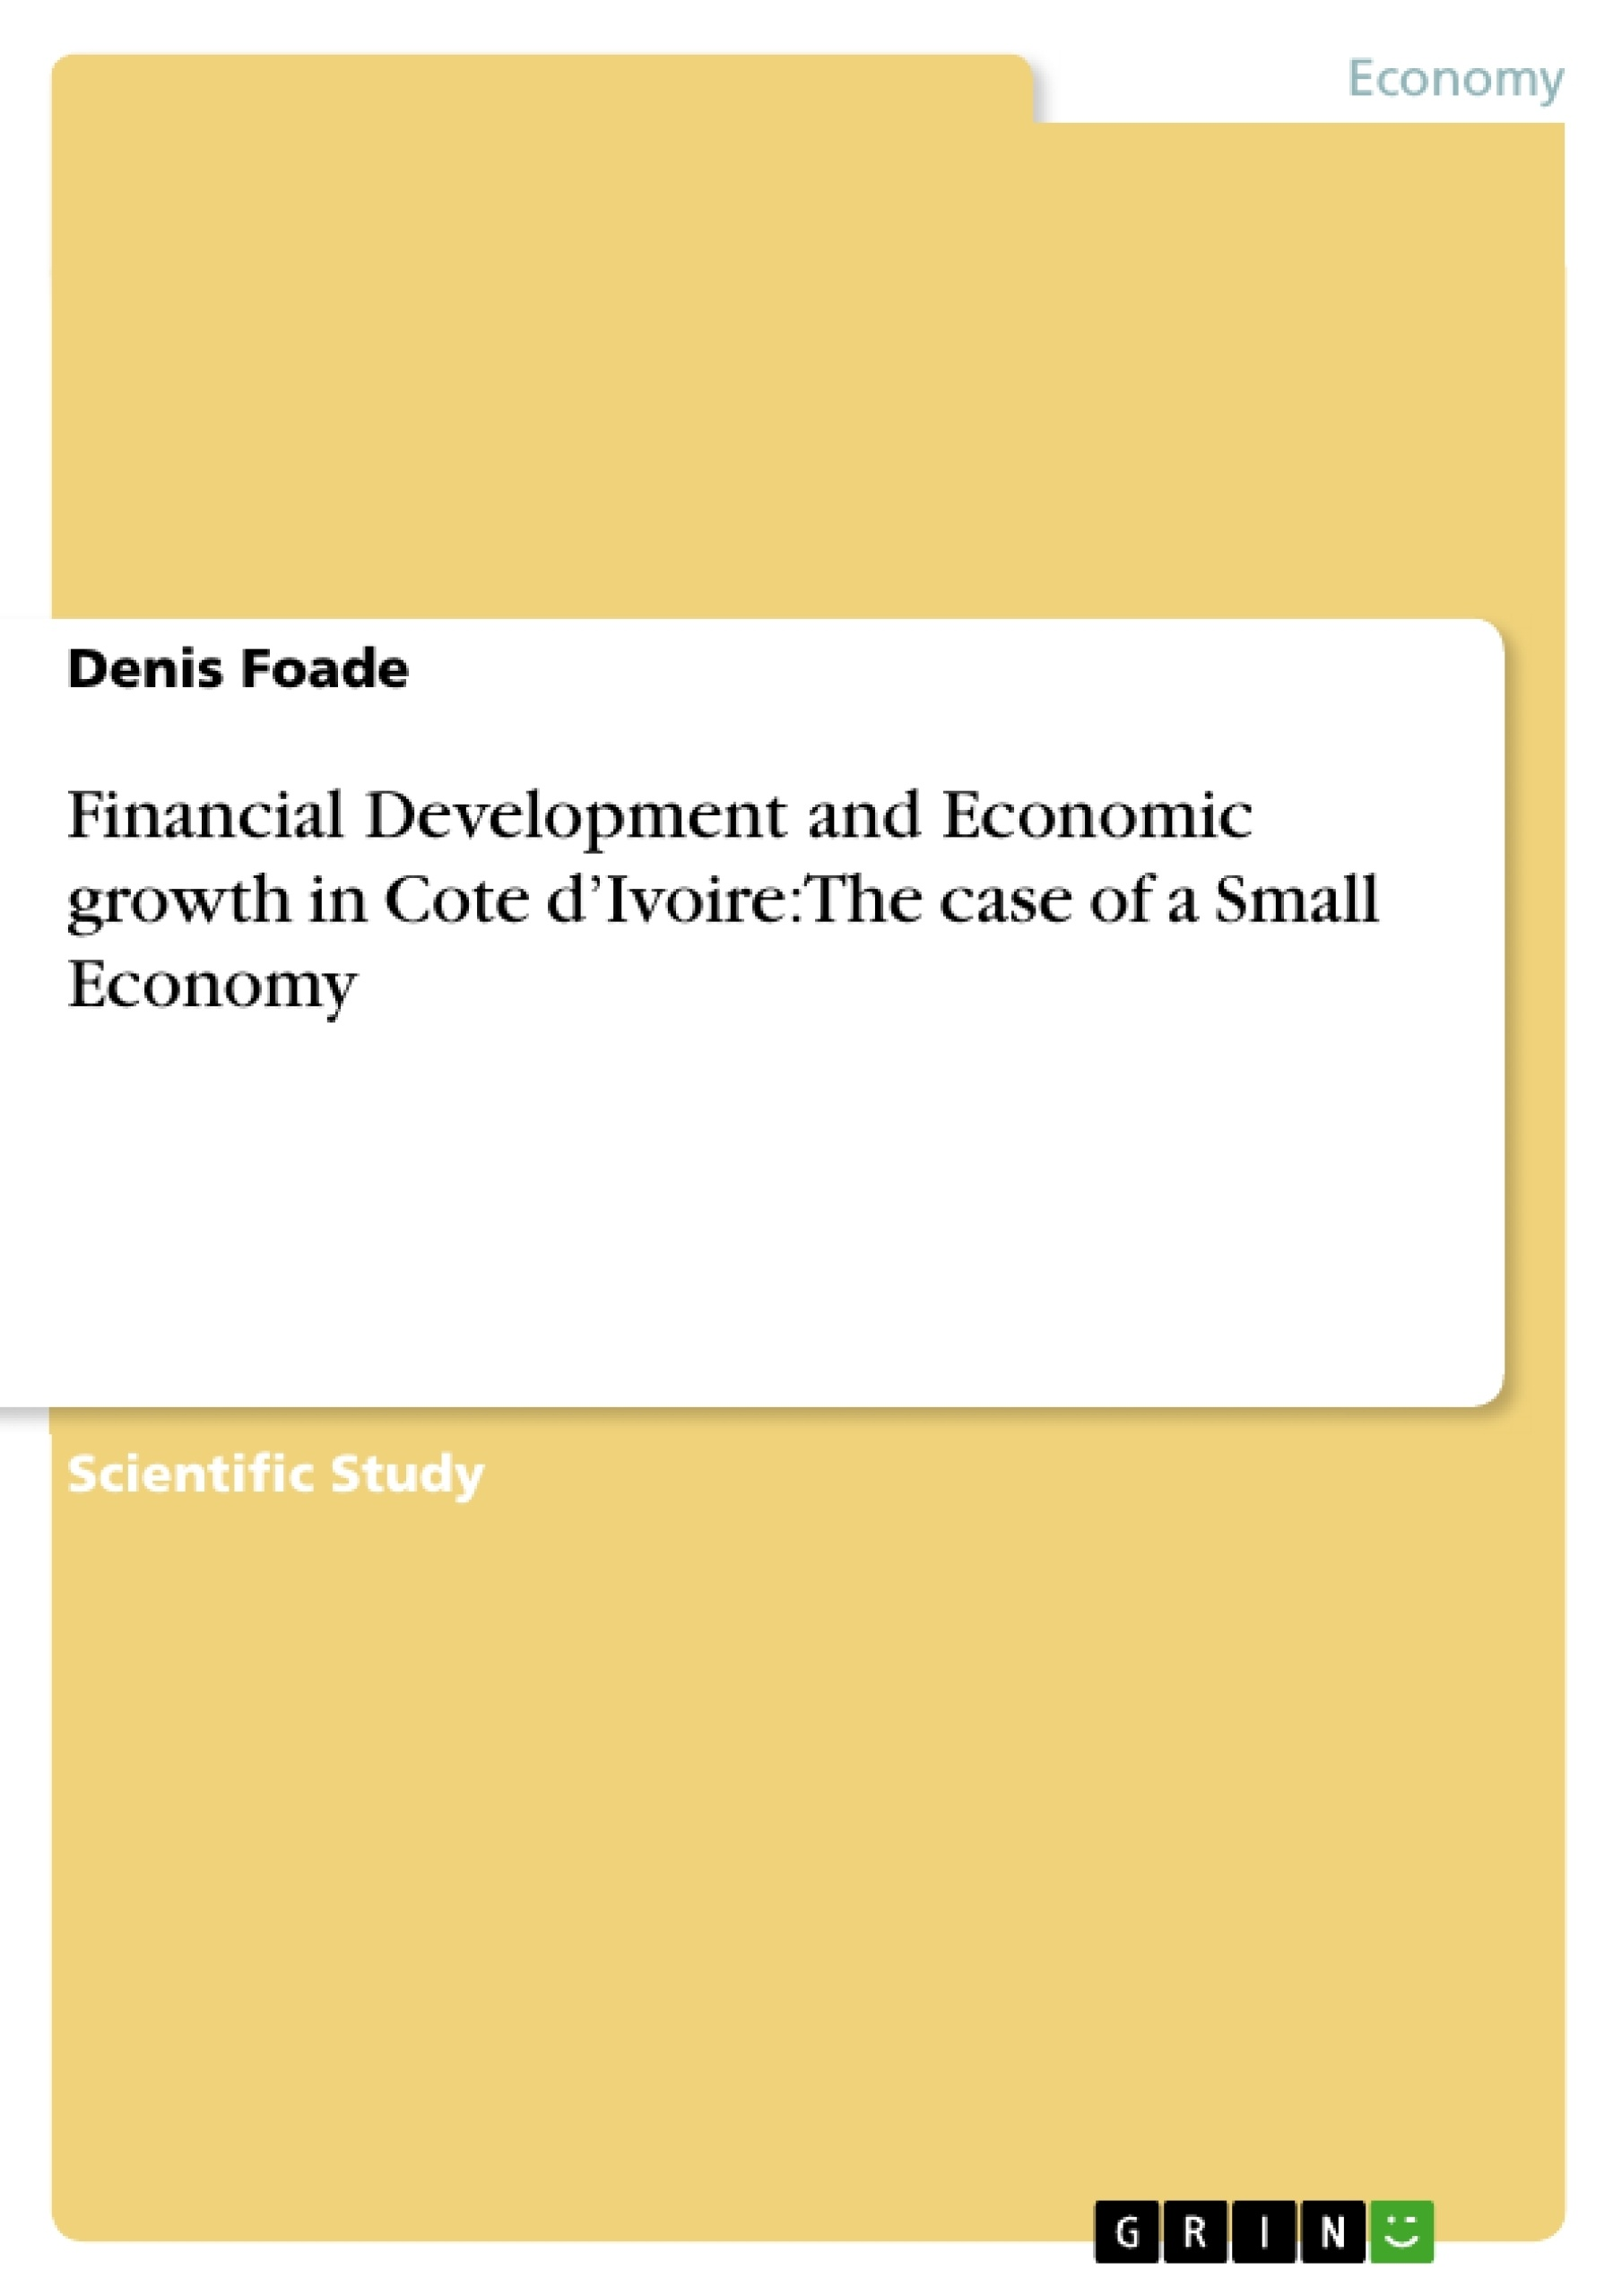 Title: Financial Development and Economic growth in Cote d'Ivoire: The case of a Small Economy